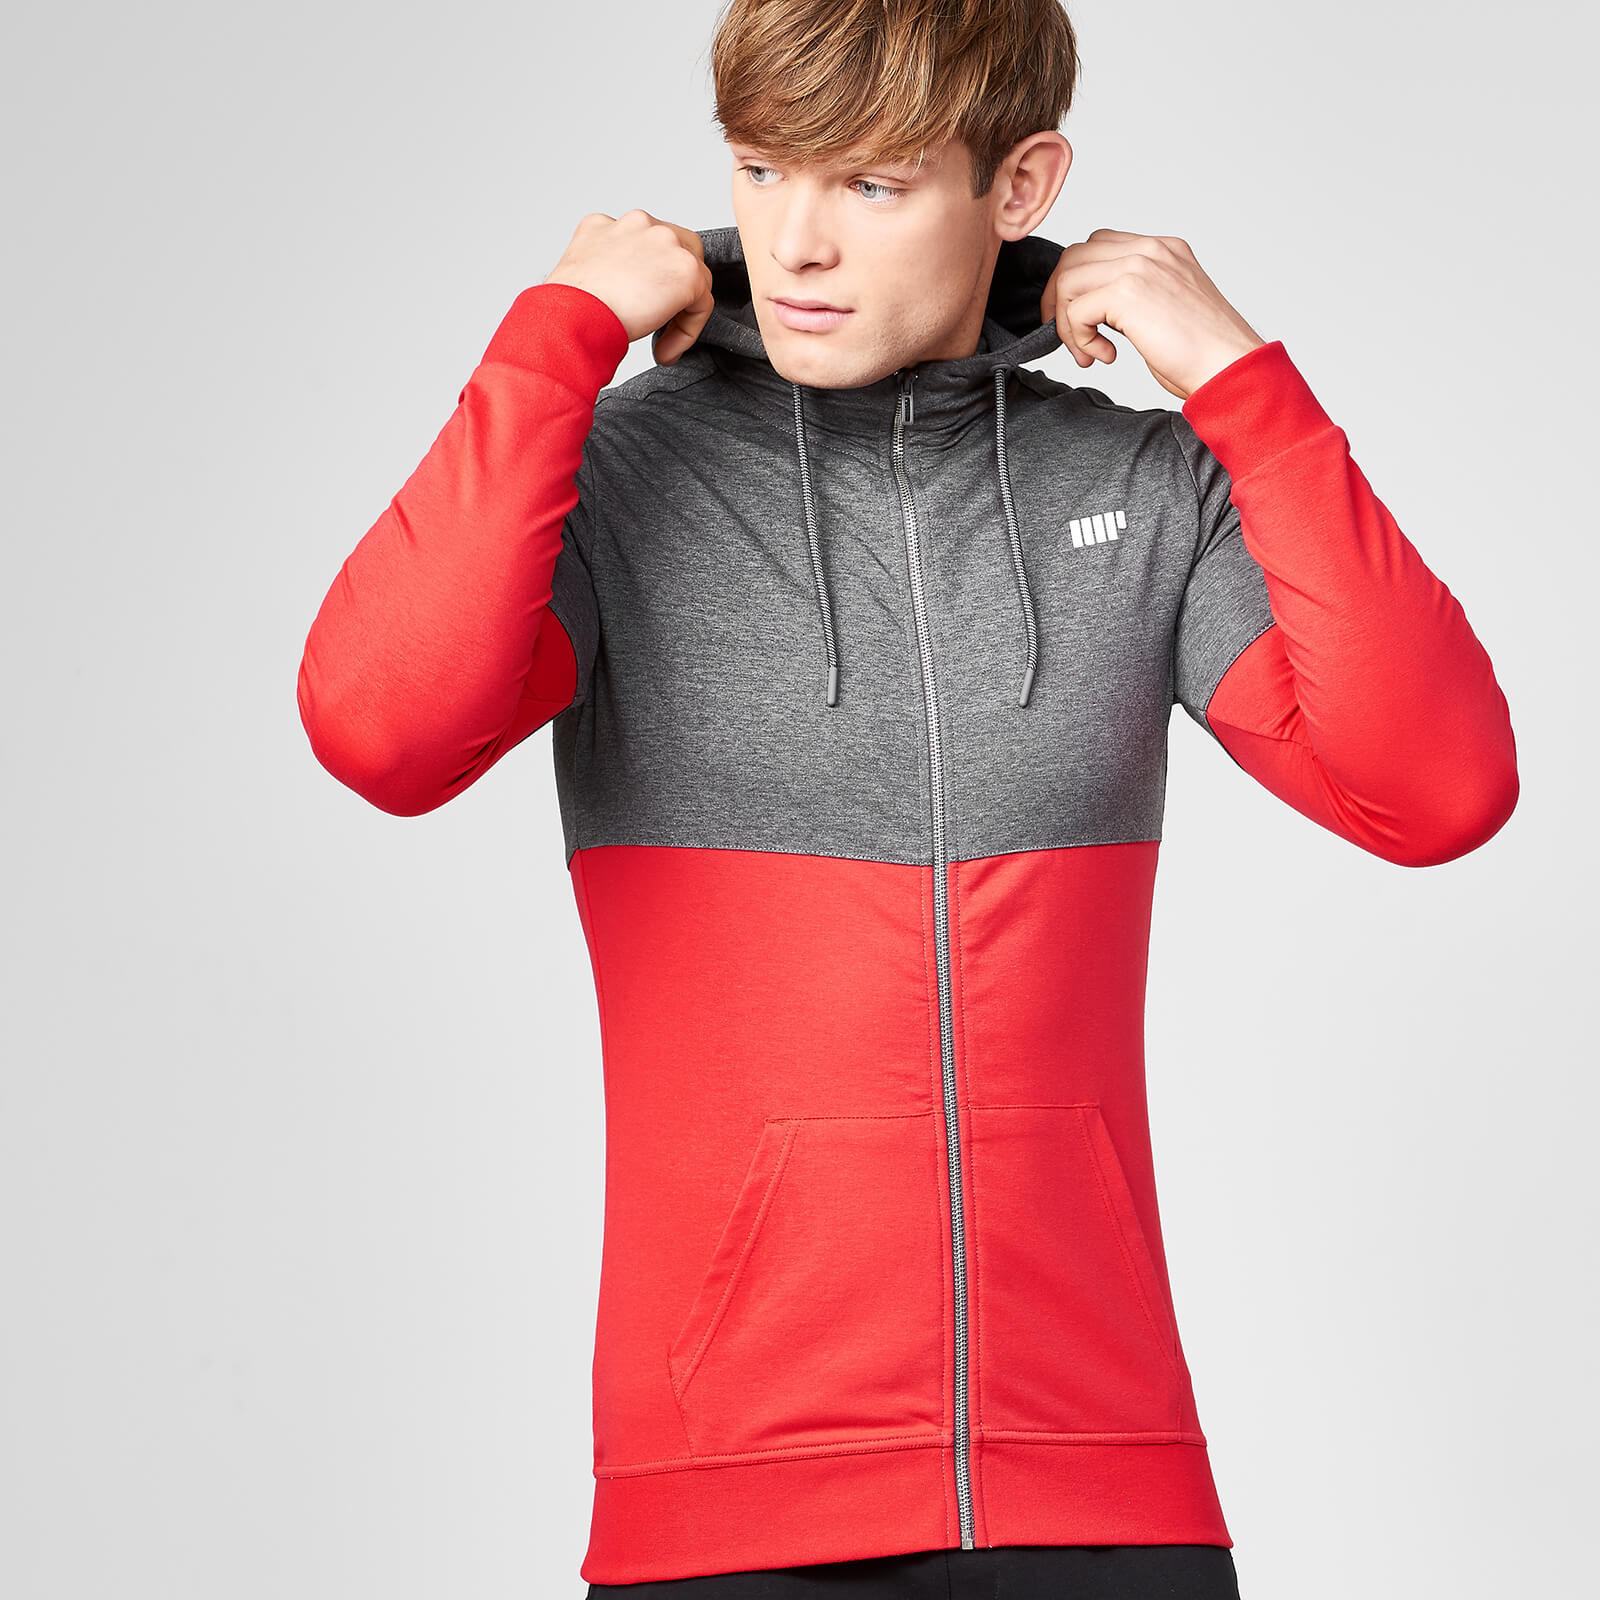 Myprotein Superlite Zip-Up Hoodie